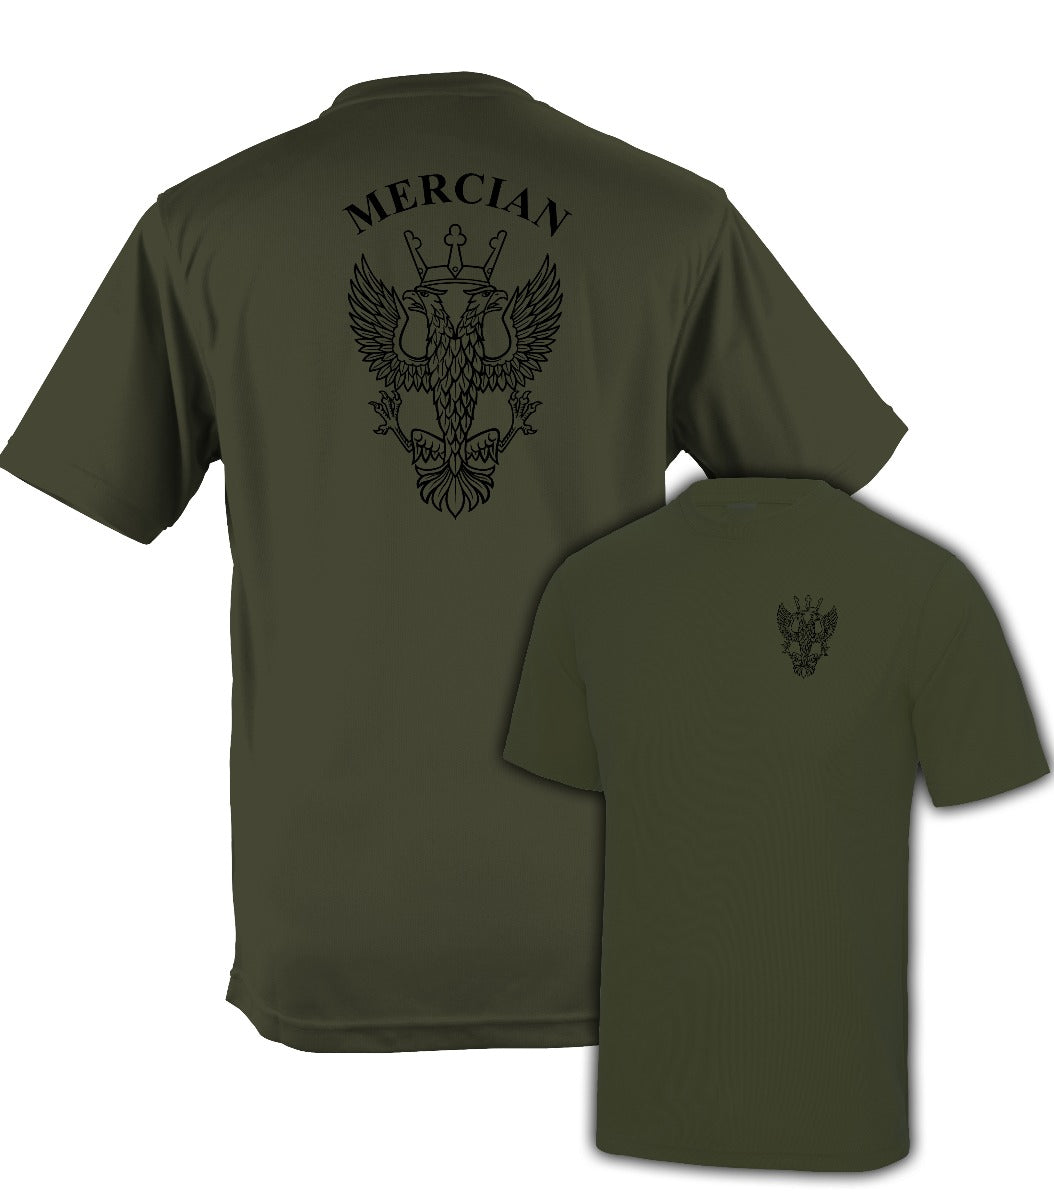 Fully Printed Mercian Regiment Wicking Fabric T-shirt